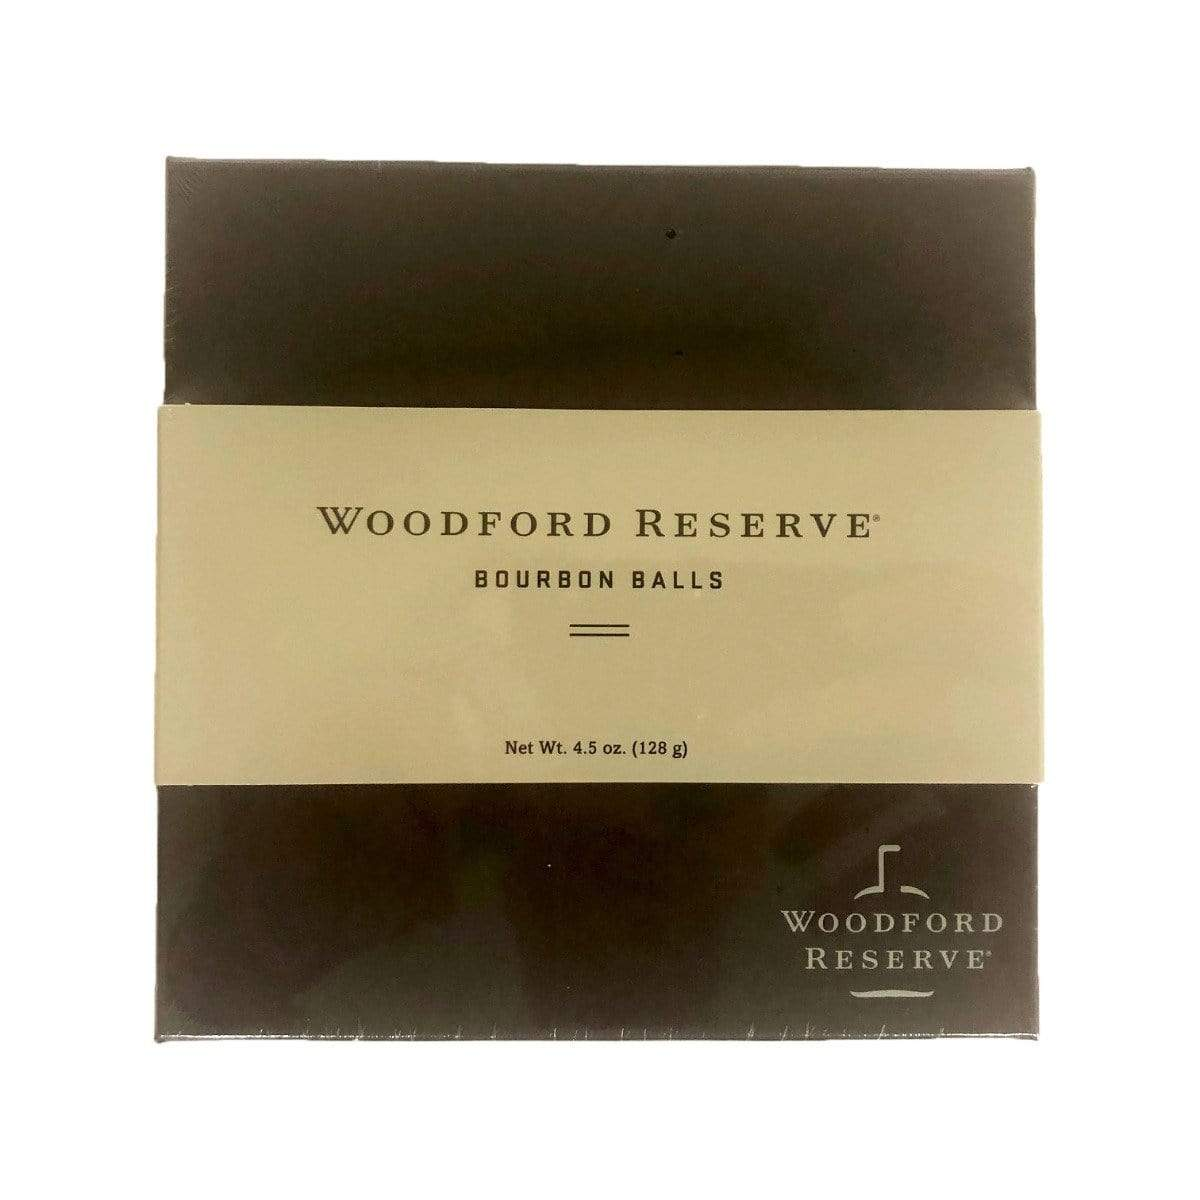 Ruth Hunt Candy Co. Woodford Reserve Bourbon Balls 4.5 oz